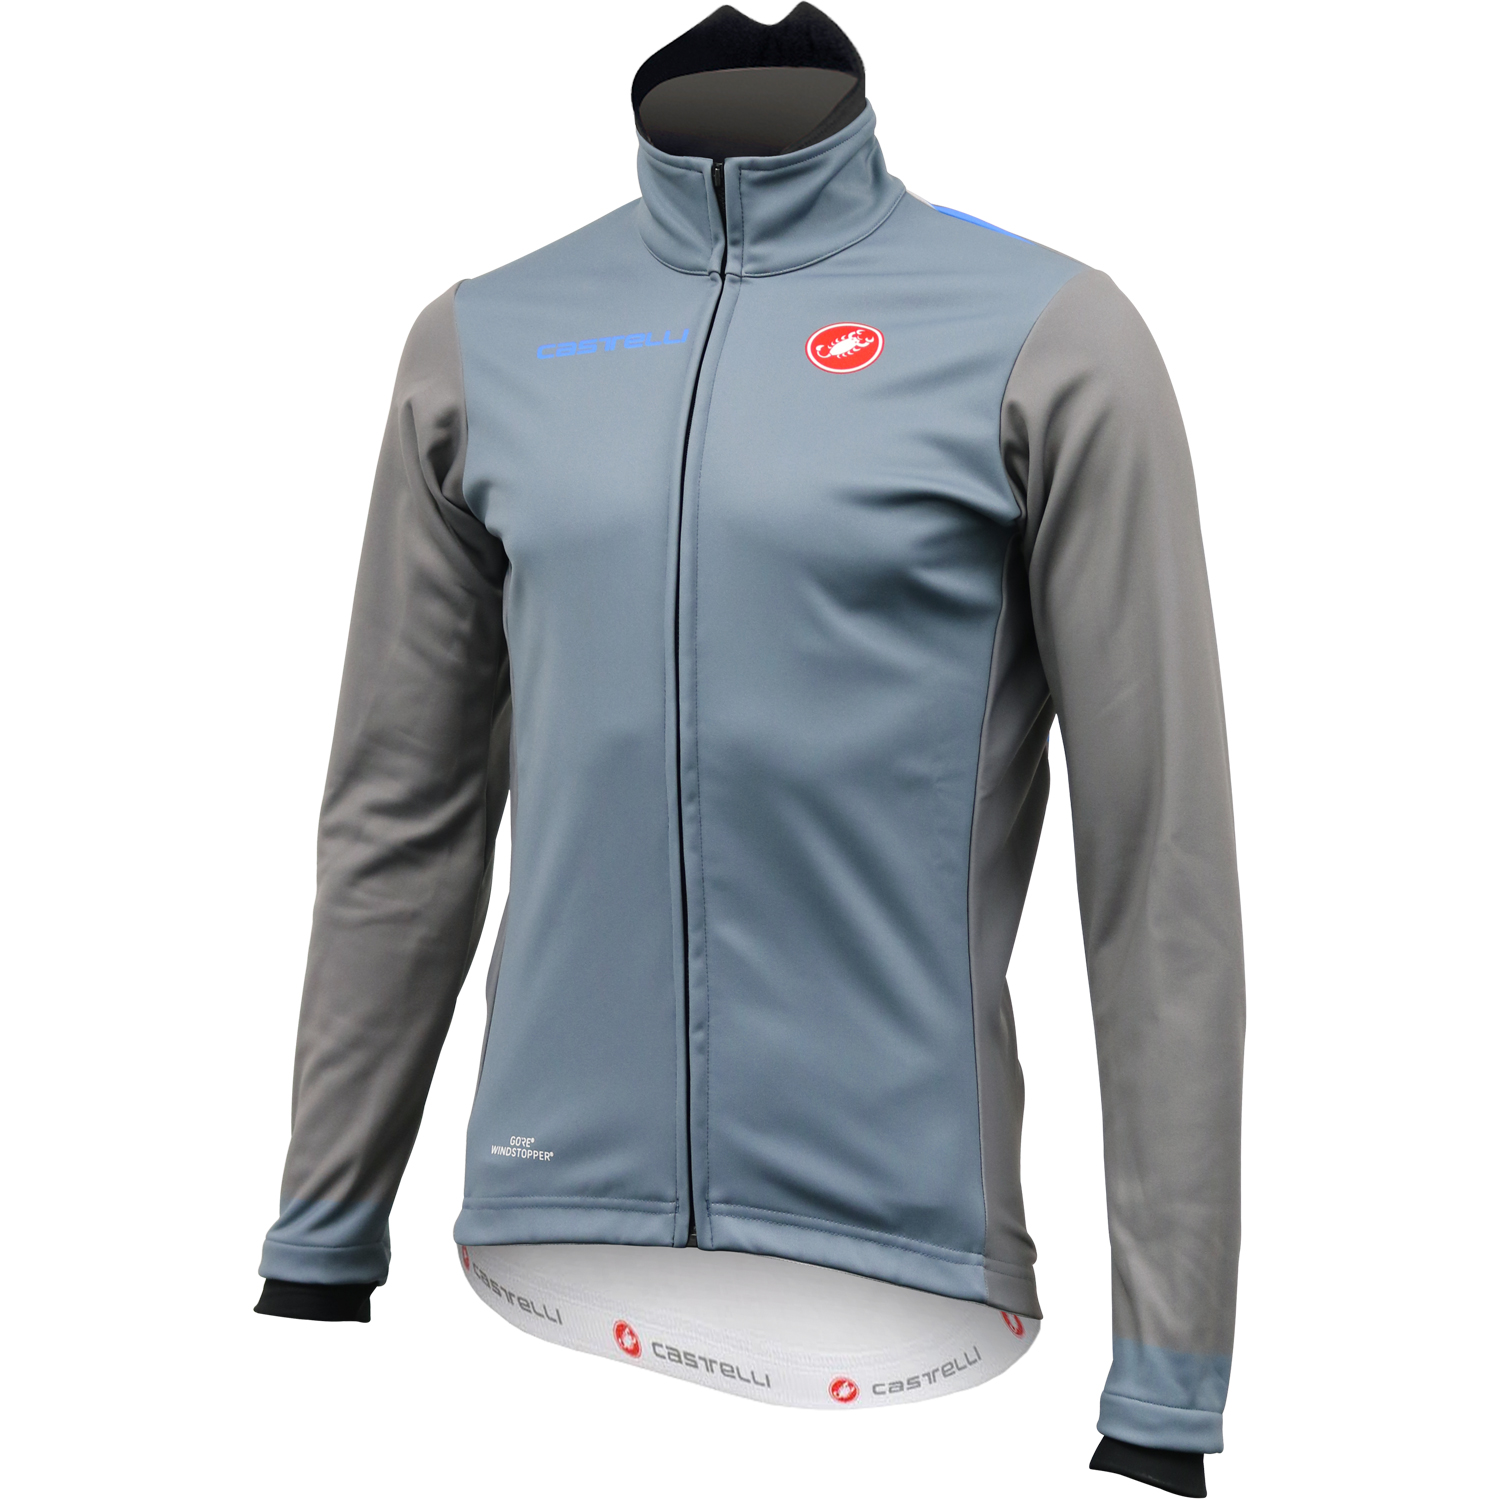 Castelli Classic Winter WS Cycling Jacket - Clearance